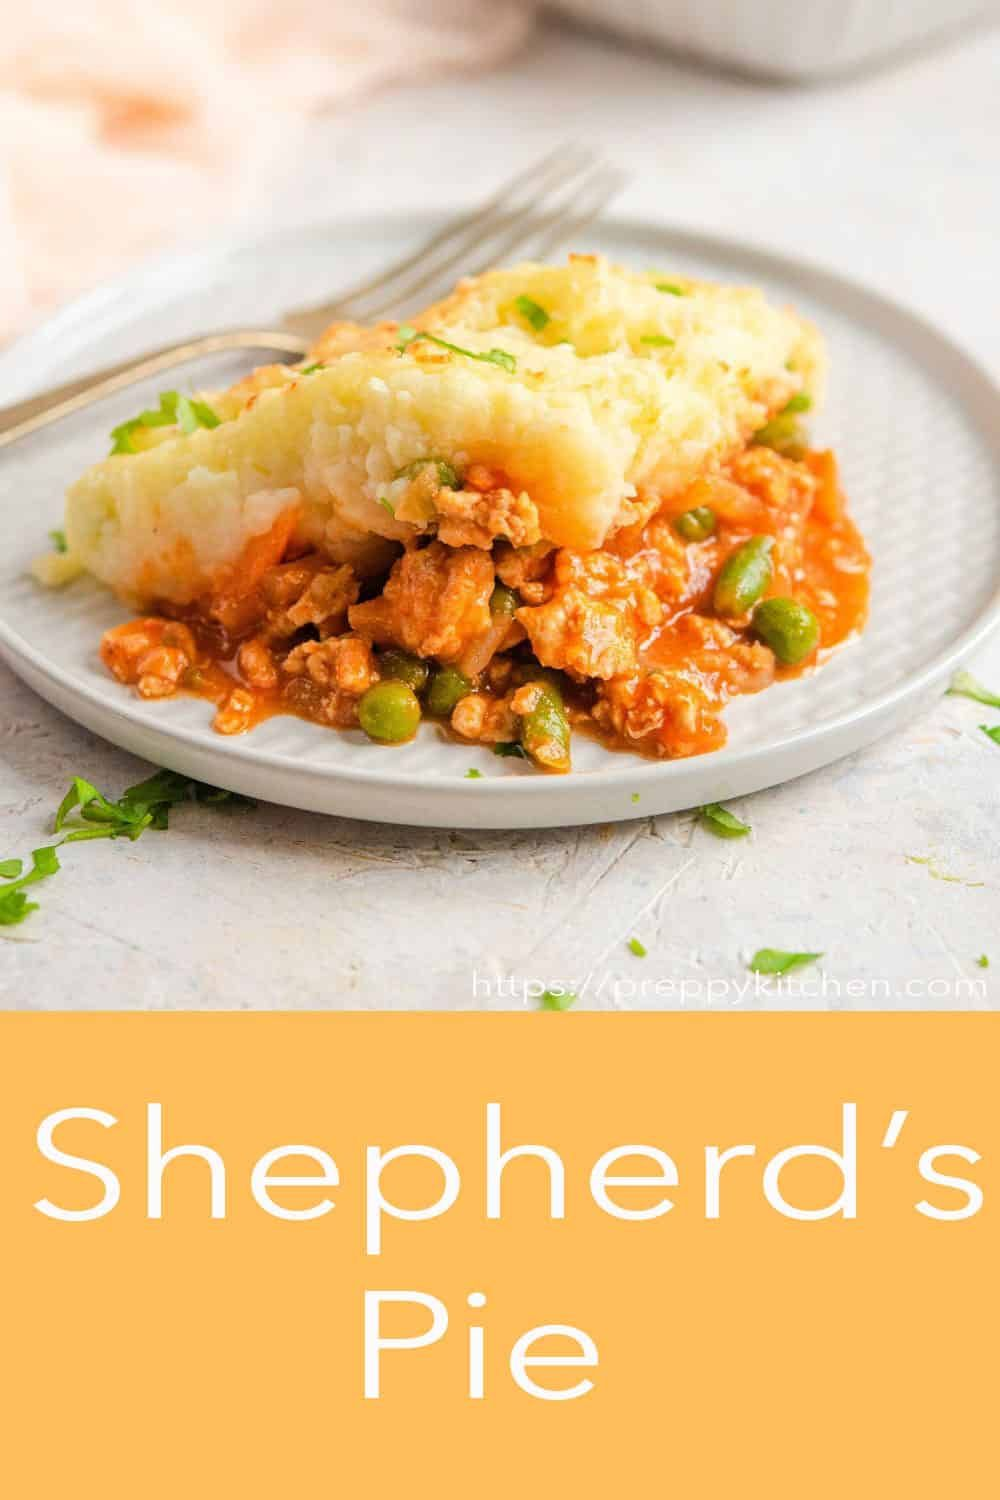 Wholesome Hearty And Comforting Shepherd S Pie Made With Ground Chicken A Saucy And Delicious Gravy A In 2020 With Images Easy Dinner Recipes Cooking Recipes Best Dinner Recipes